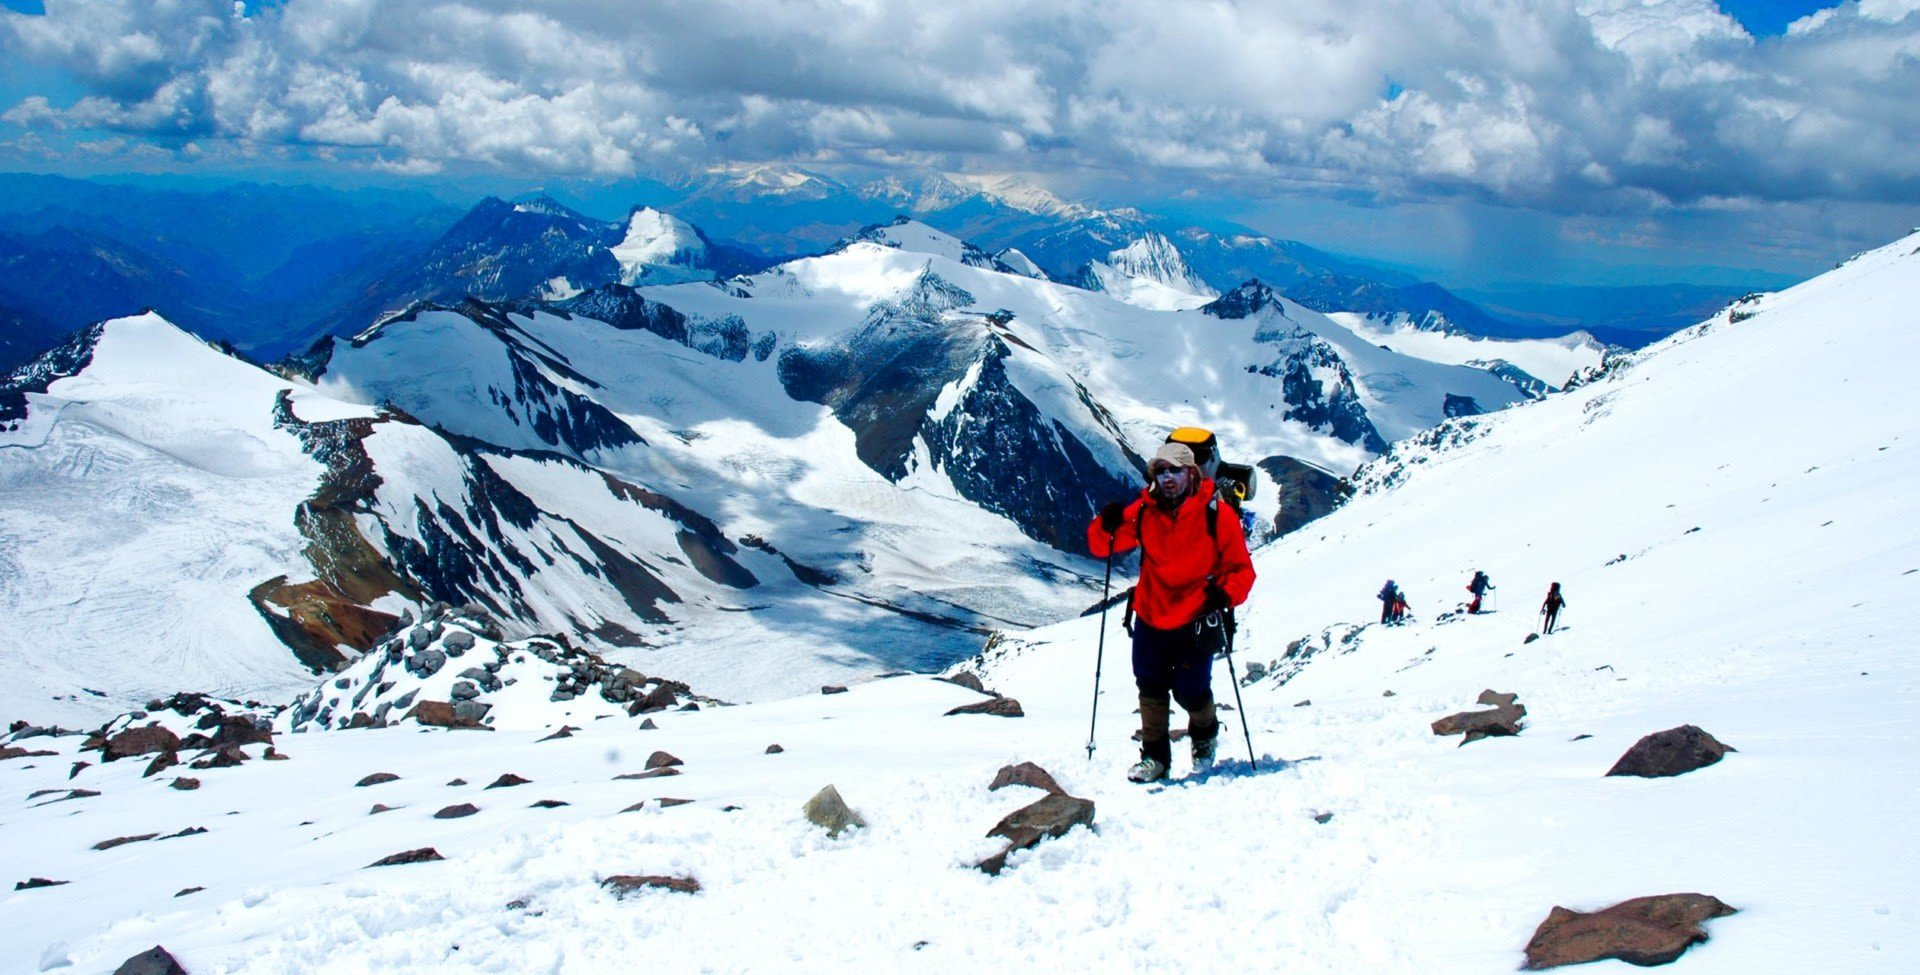 Hiker traverses snowy South America mountains